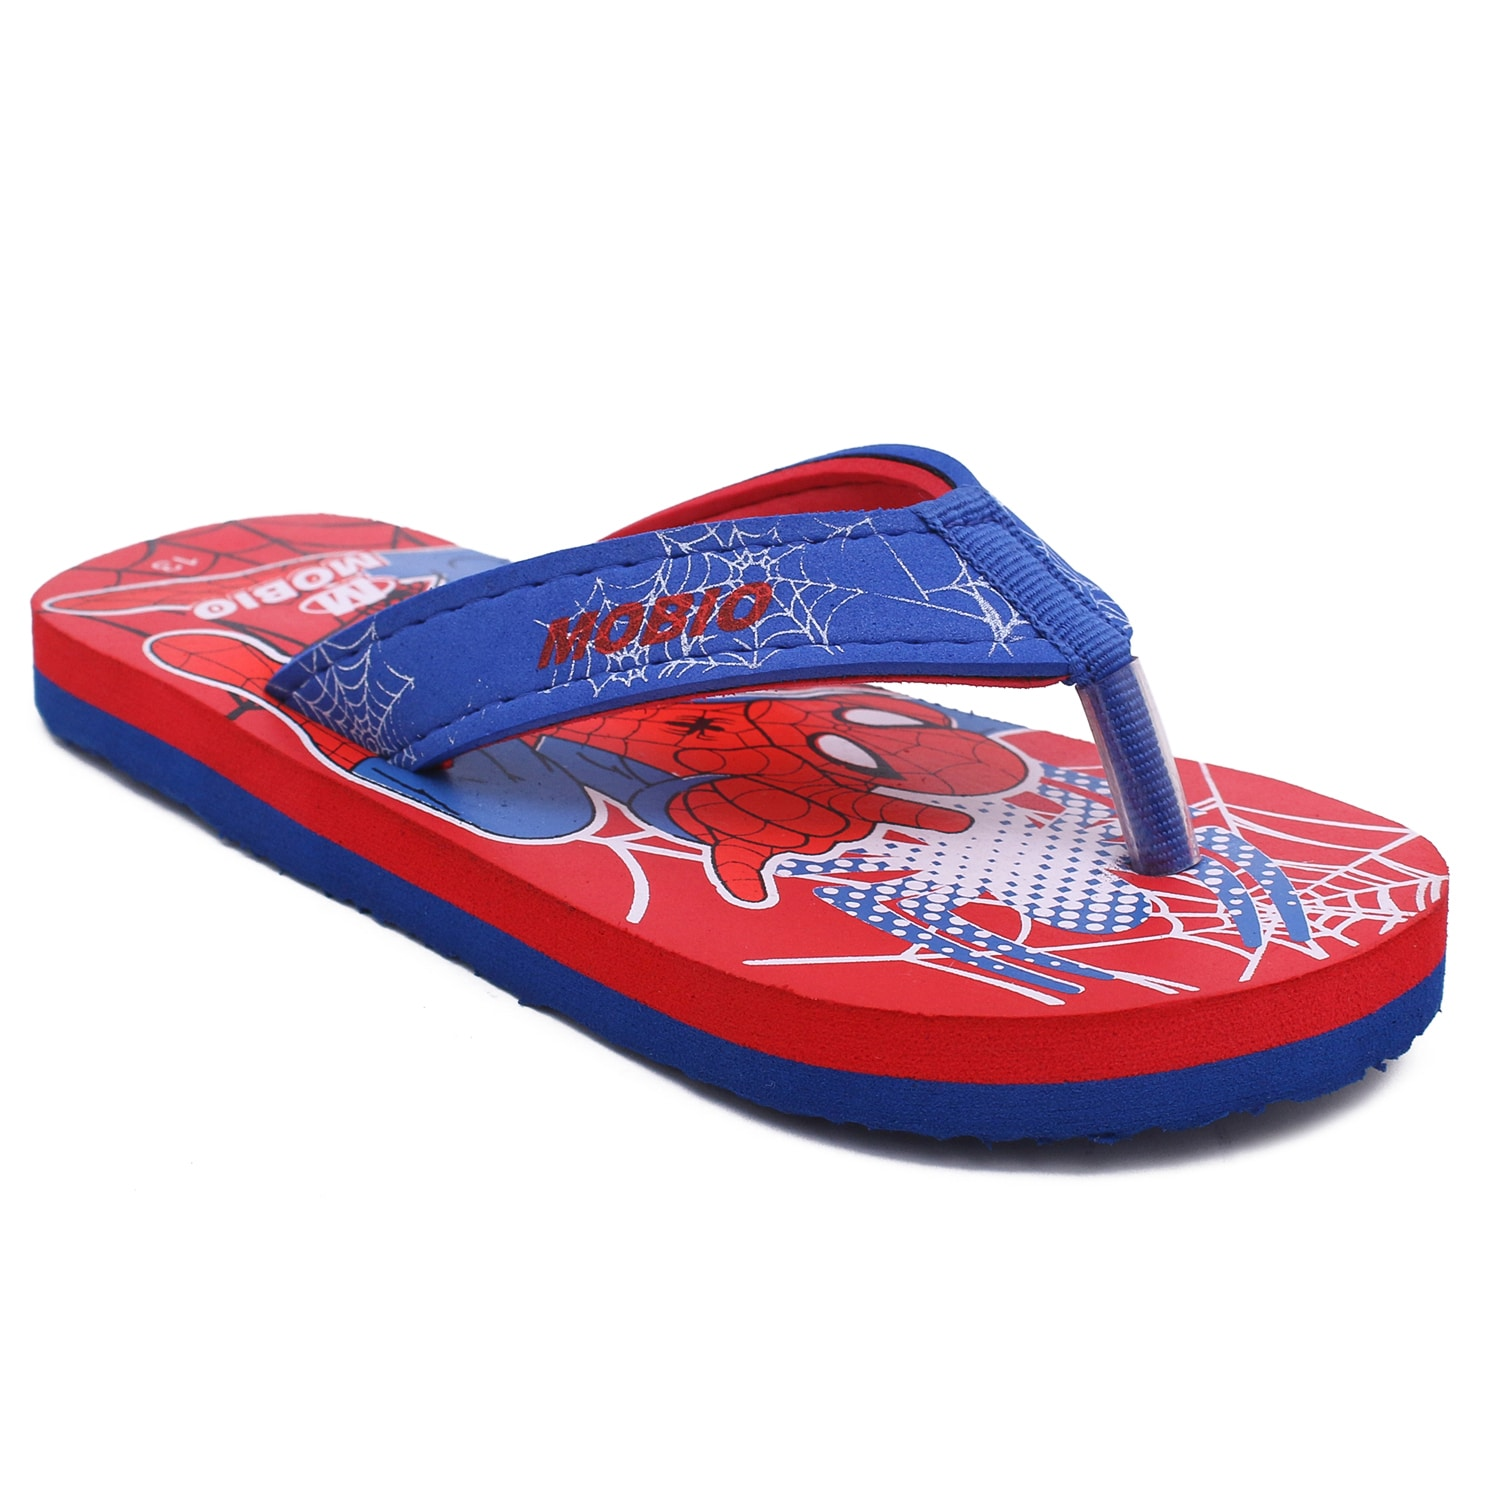 Foot Trends SPM_Blue Kids Favorite Charactor Slipper FT-SPM_BLUE (BLUE,1-3,6 PAIR)